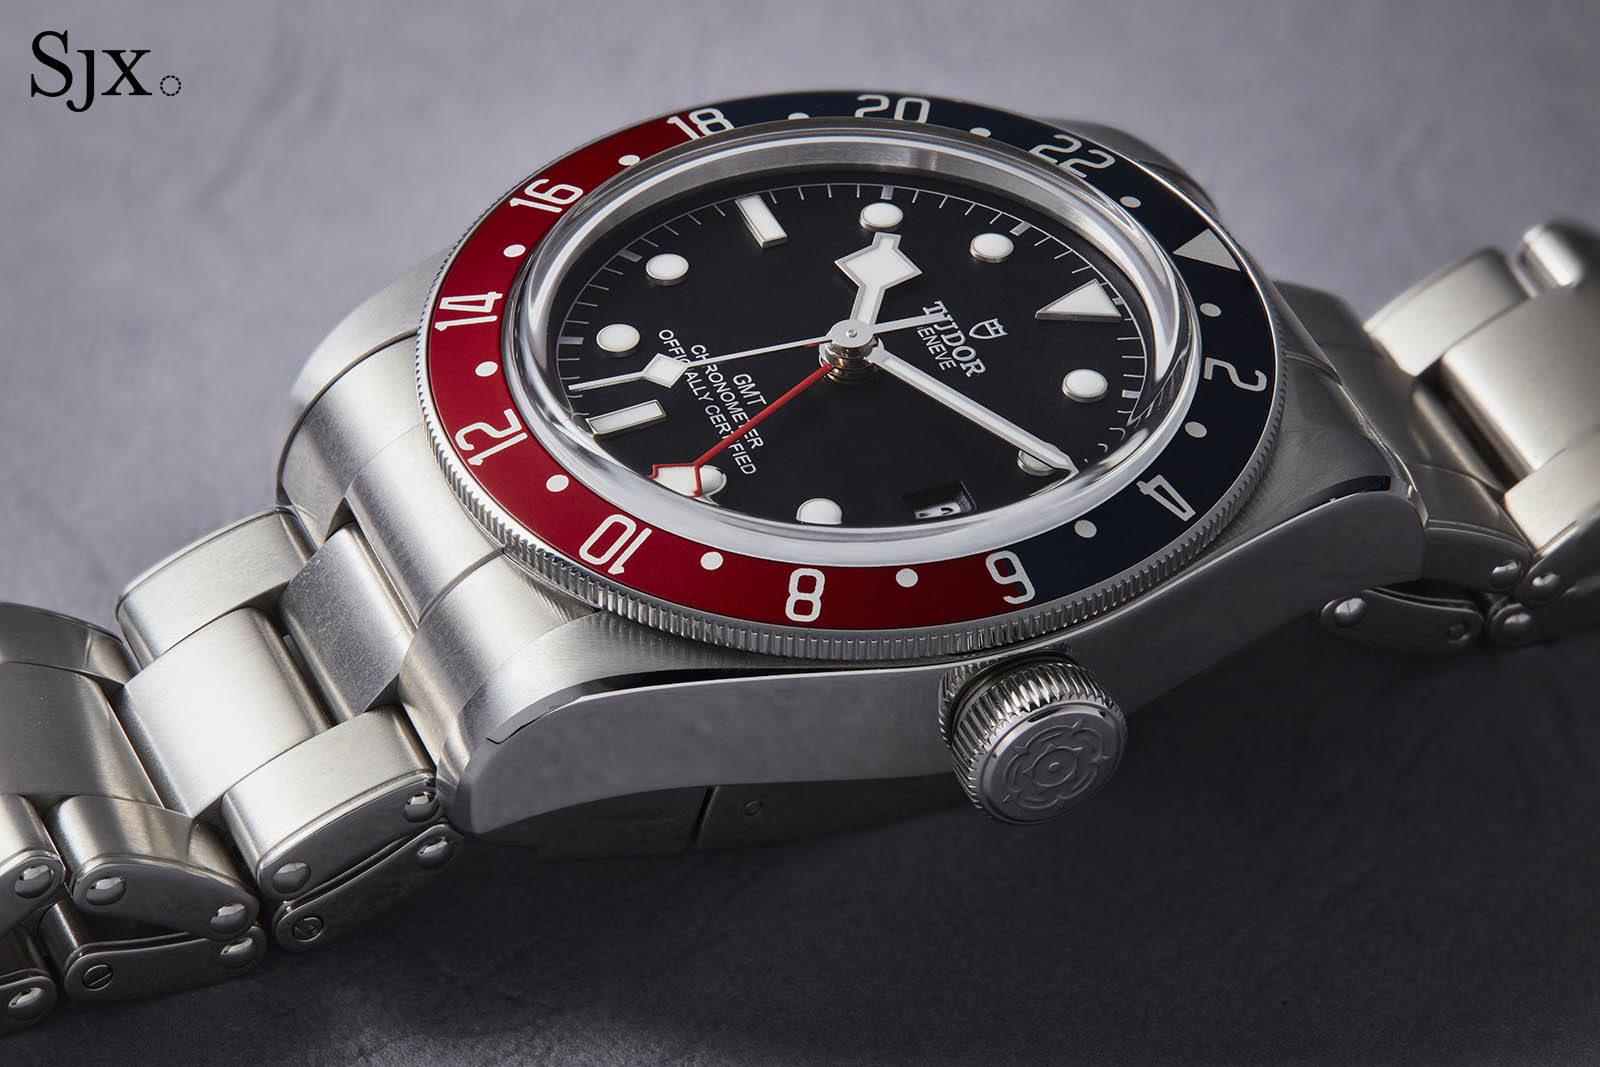 Up Close With The Tudor Black Bay Gmt Sjx Watches